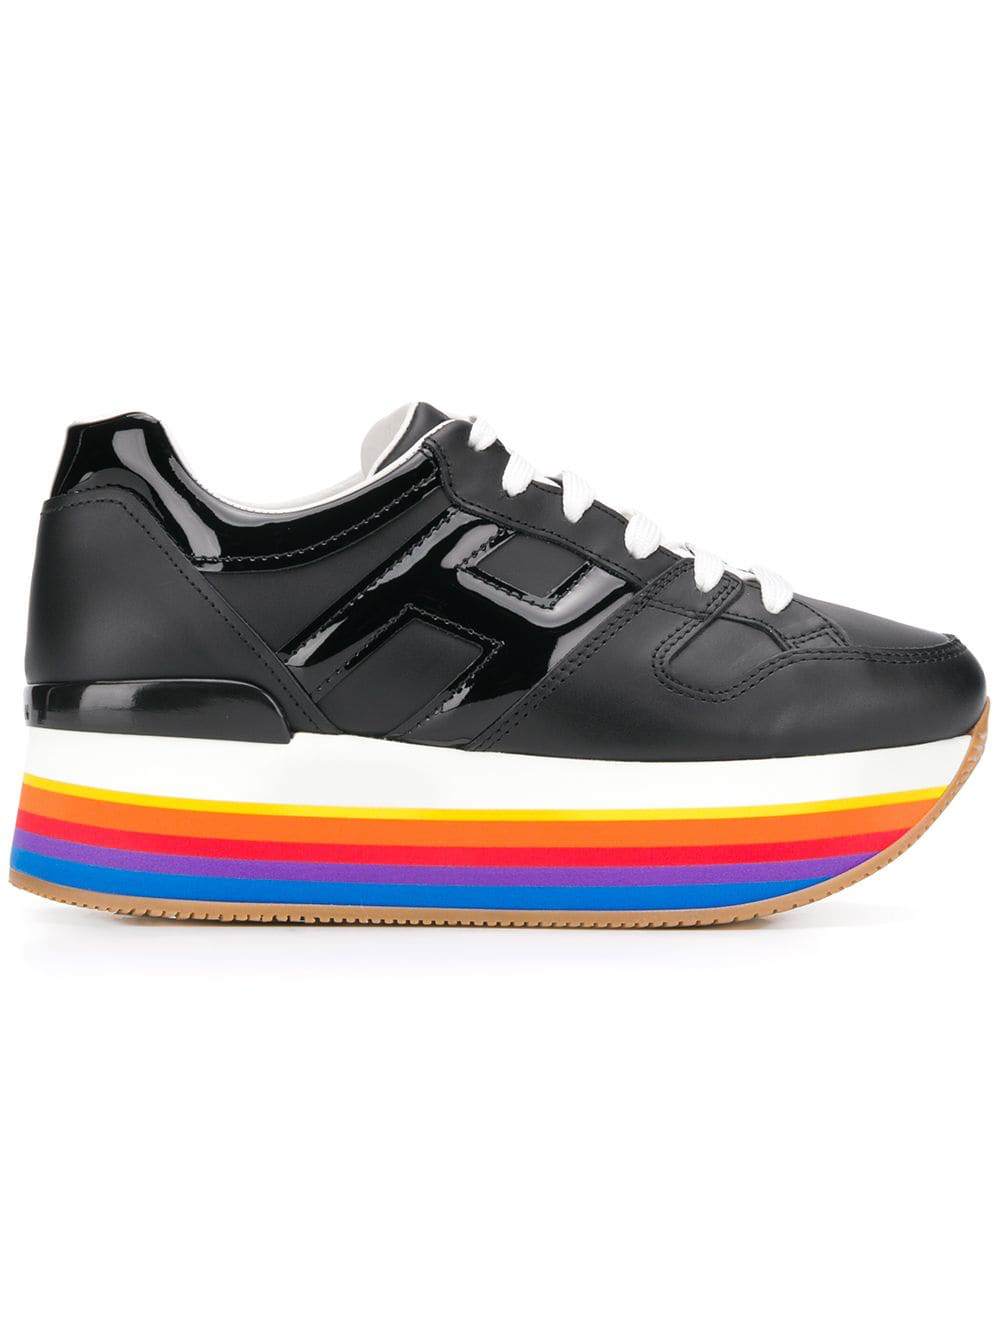 5ee1e1e712b6 Hogan Rainbow Platform Sole Sneakers - Black. Farfetch